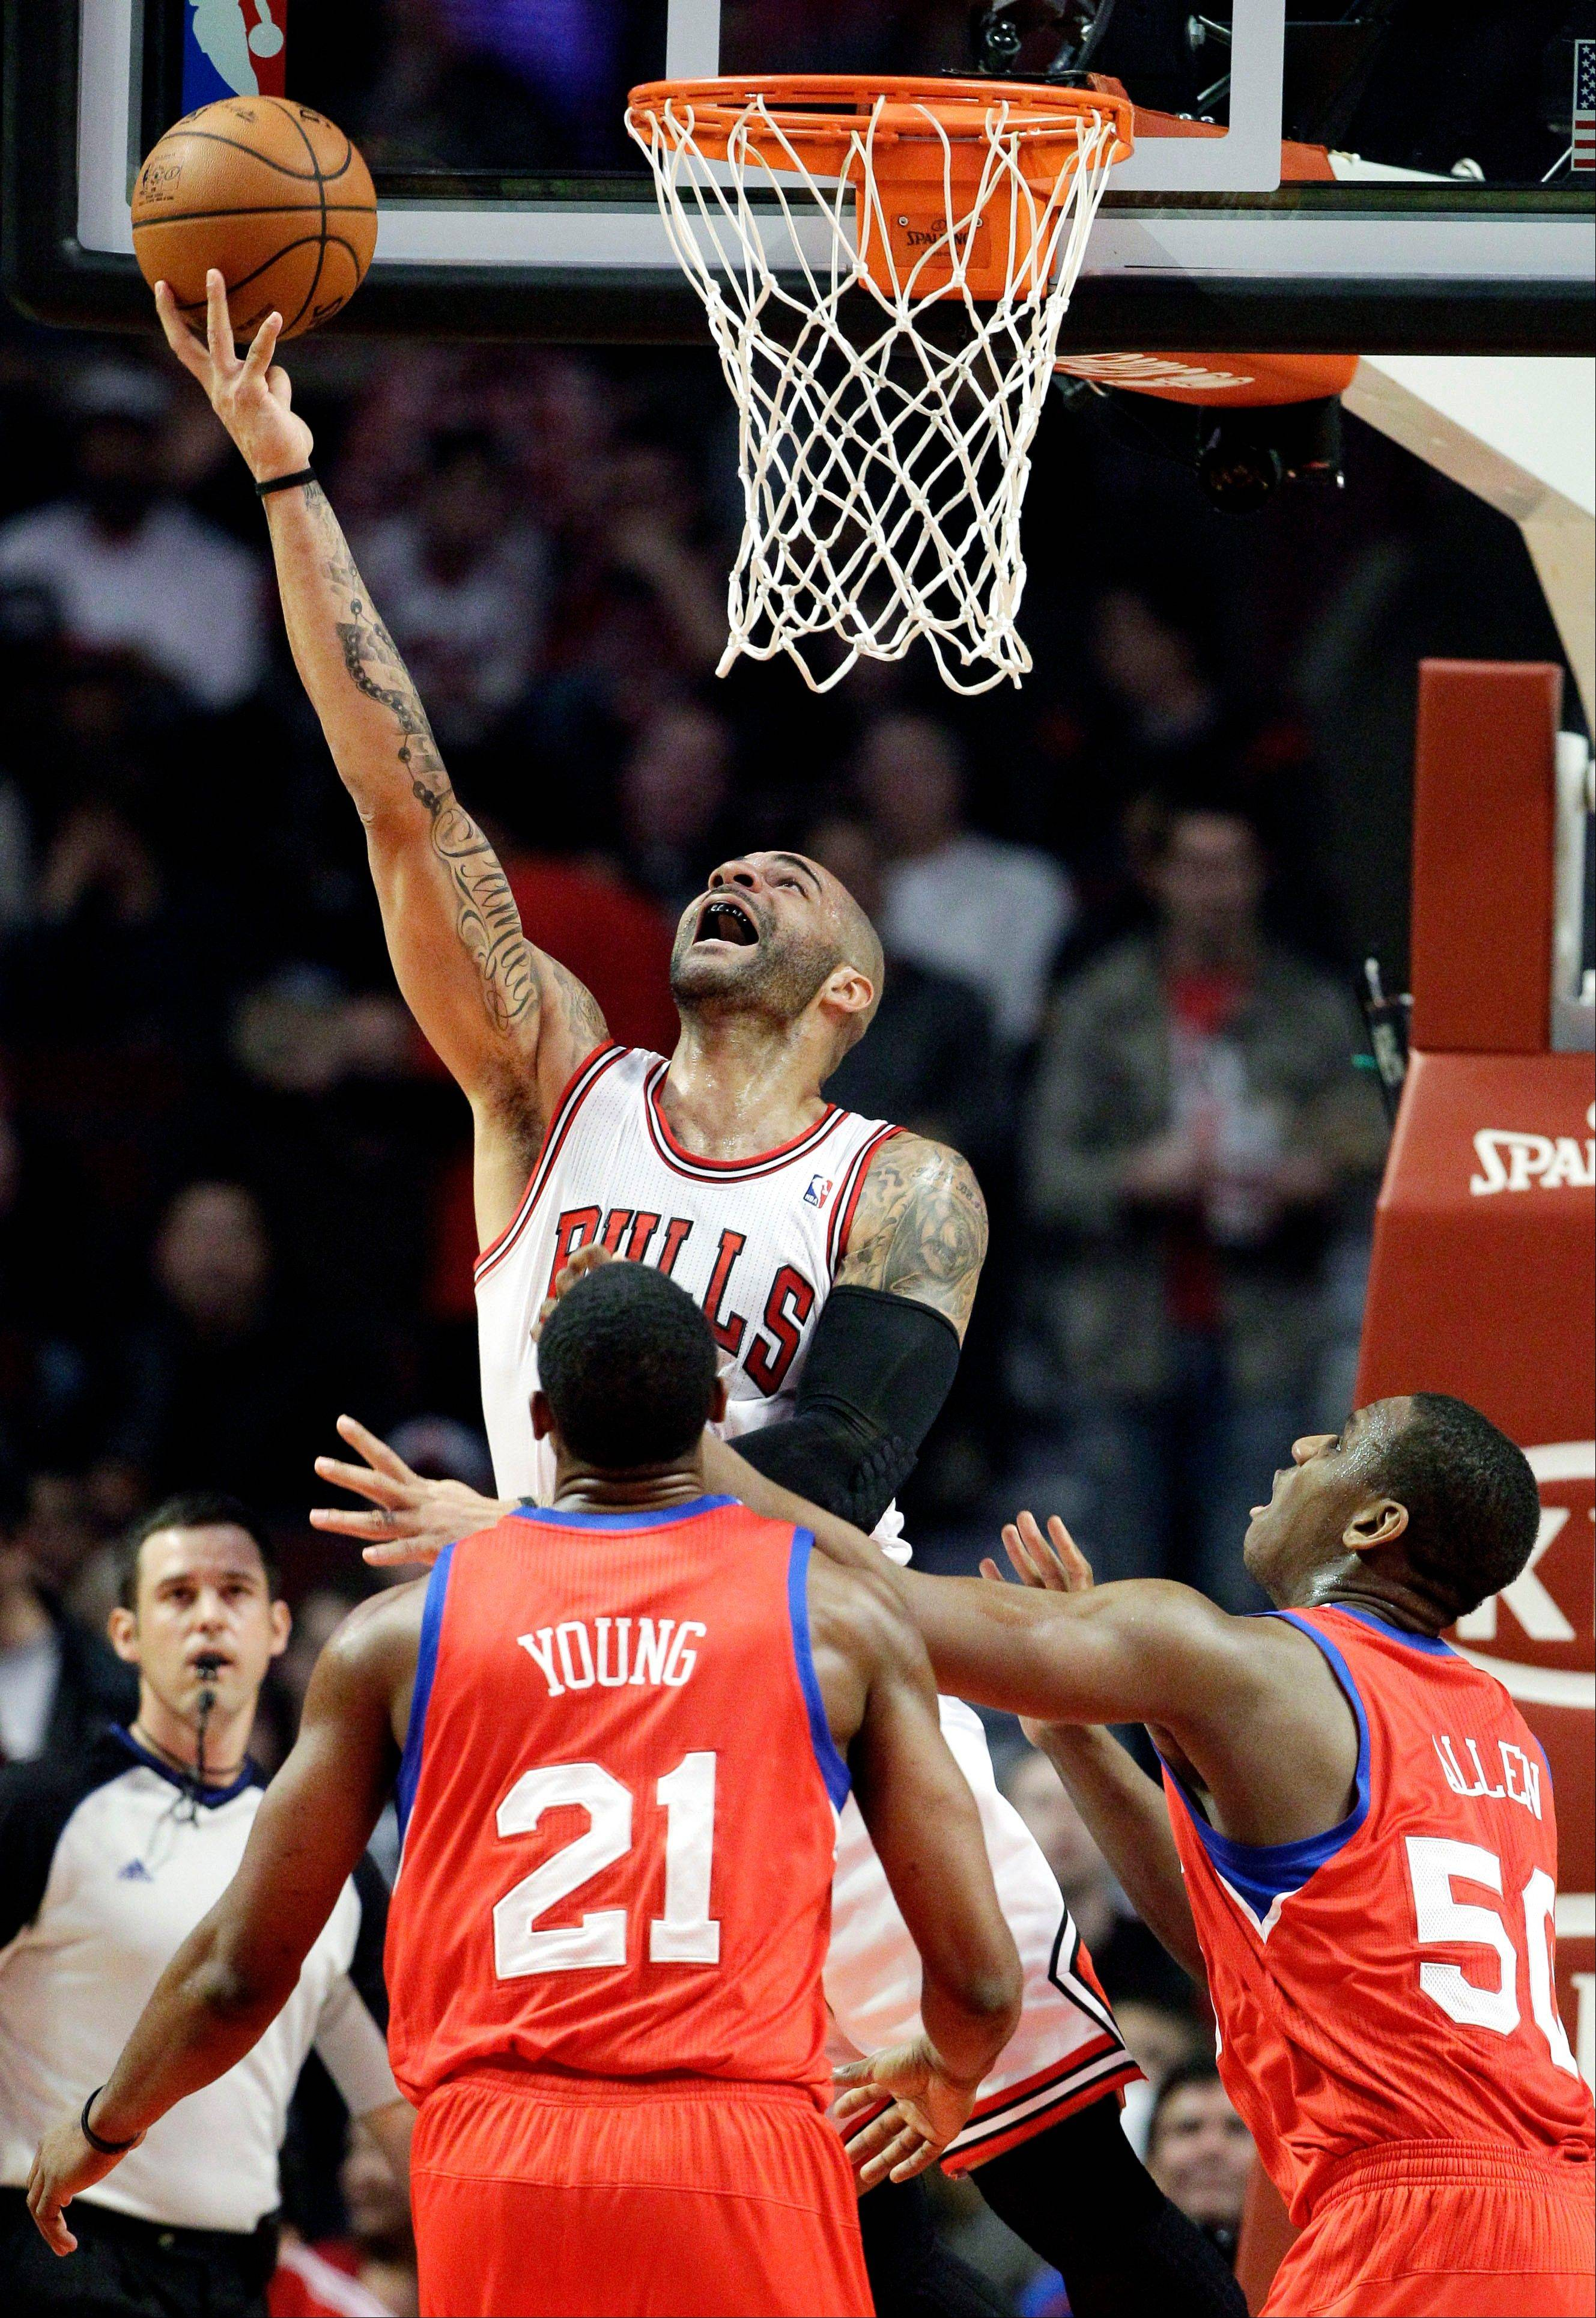 Bulls forward Carlos Boozer, top, shoots as Philadelphia 76ers forward Thaddeus Young (21) and center Lavoy Allen (50) look on Saturday during the first half.